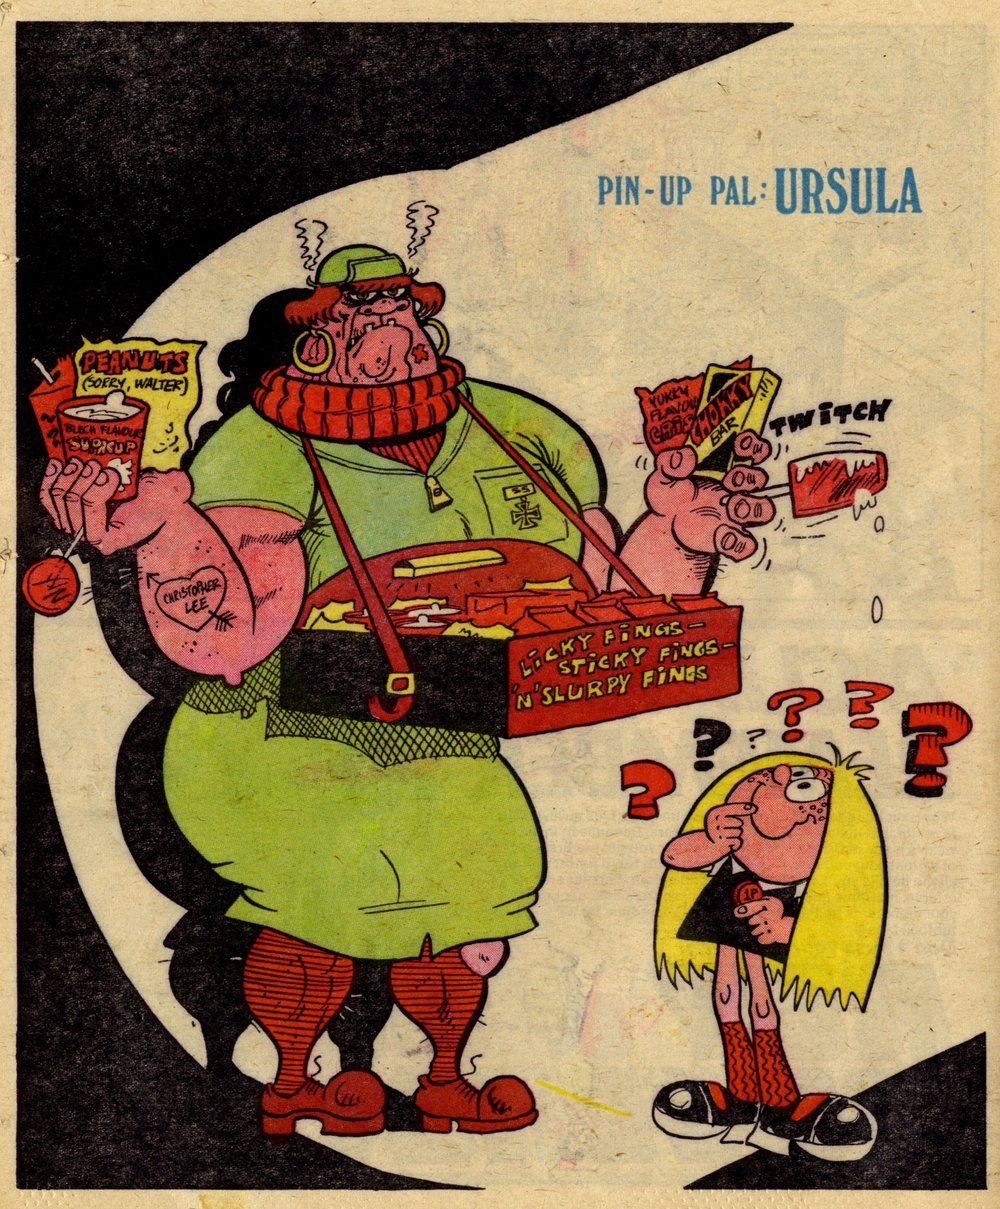 Pin-up Pal: Ursula (artist Frank McDiarmid), 29 April 1978